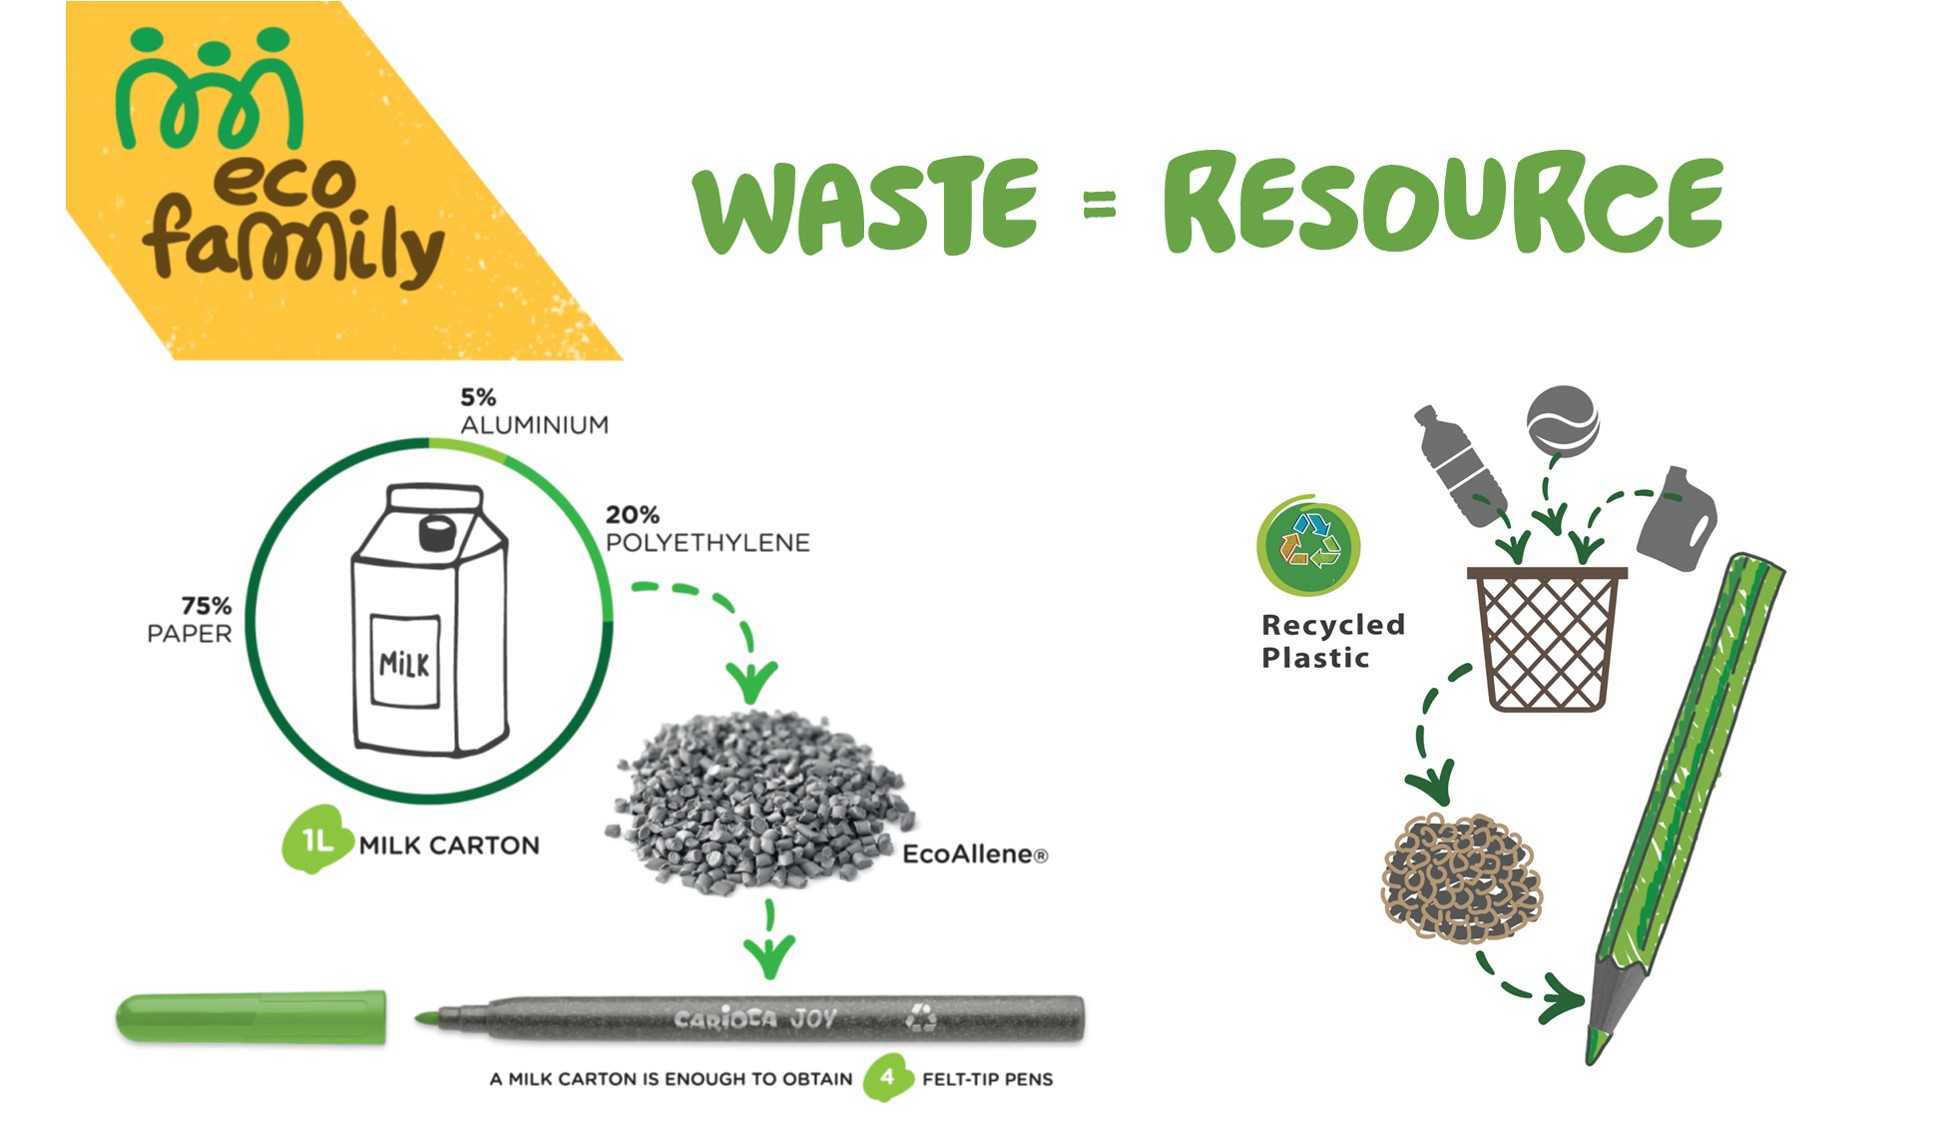 WASTE BECOMES A RESOURCE!